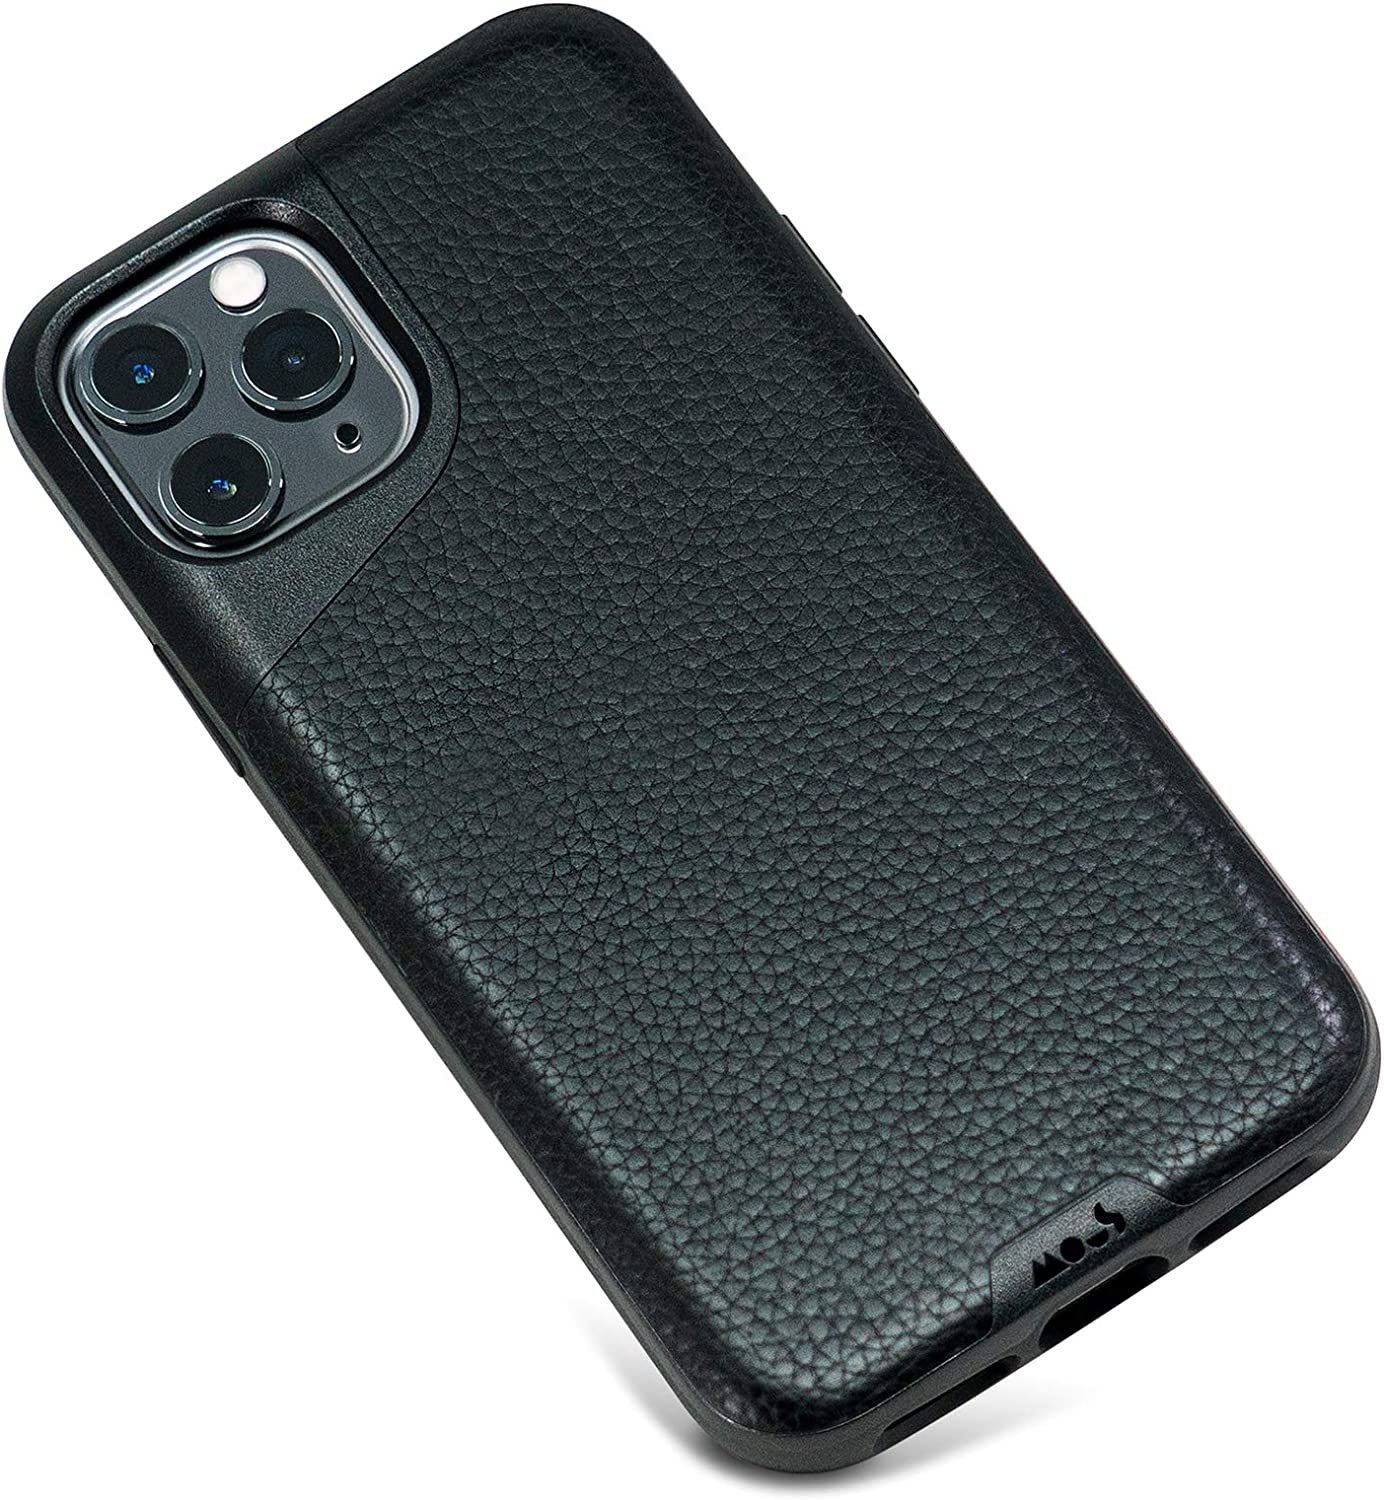 Mous - Protective Case for iPhone 11 Pro Max - Contour - Black Leather - No Screen Protector